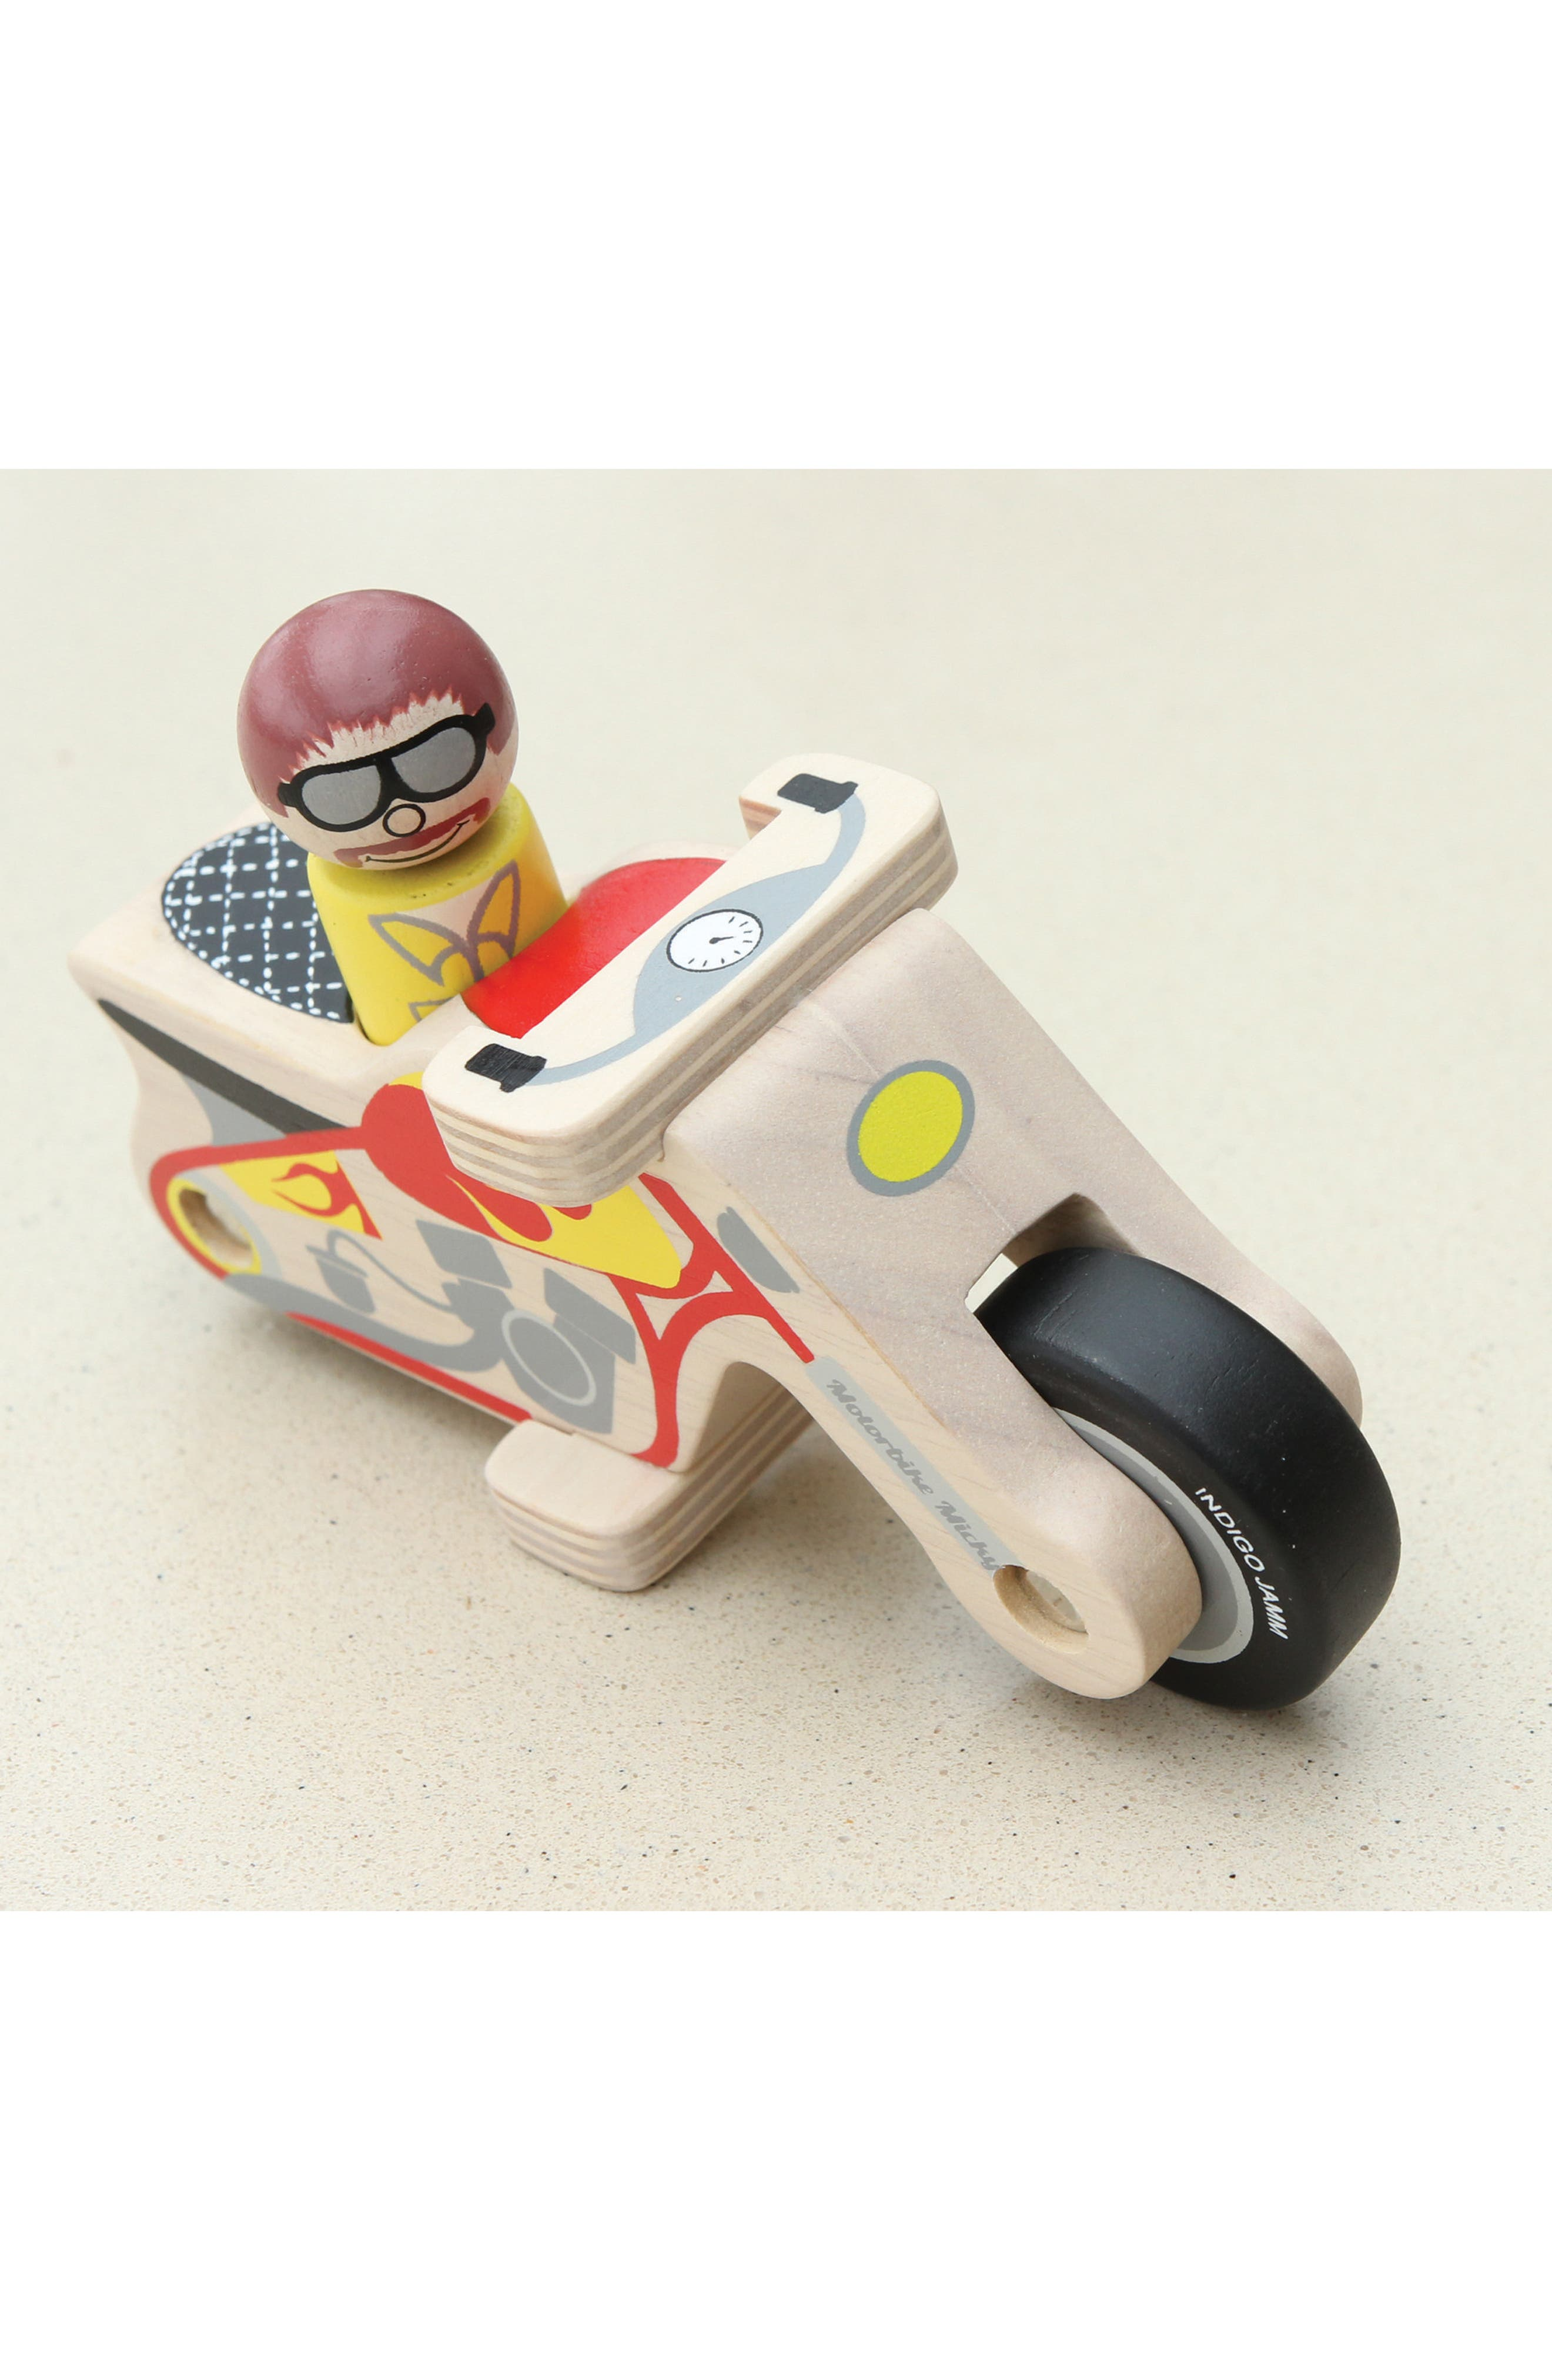 Motorbike Micky Wooden Toy,                             Alternate thumbnail 3, color,